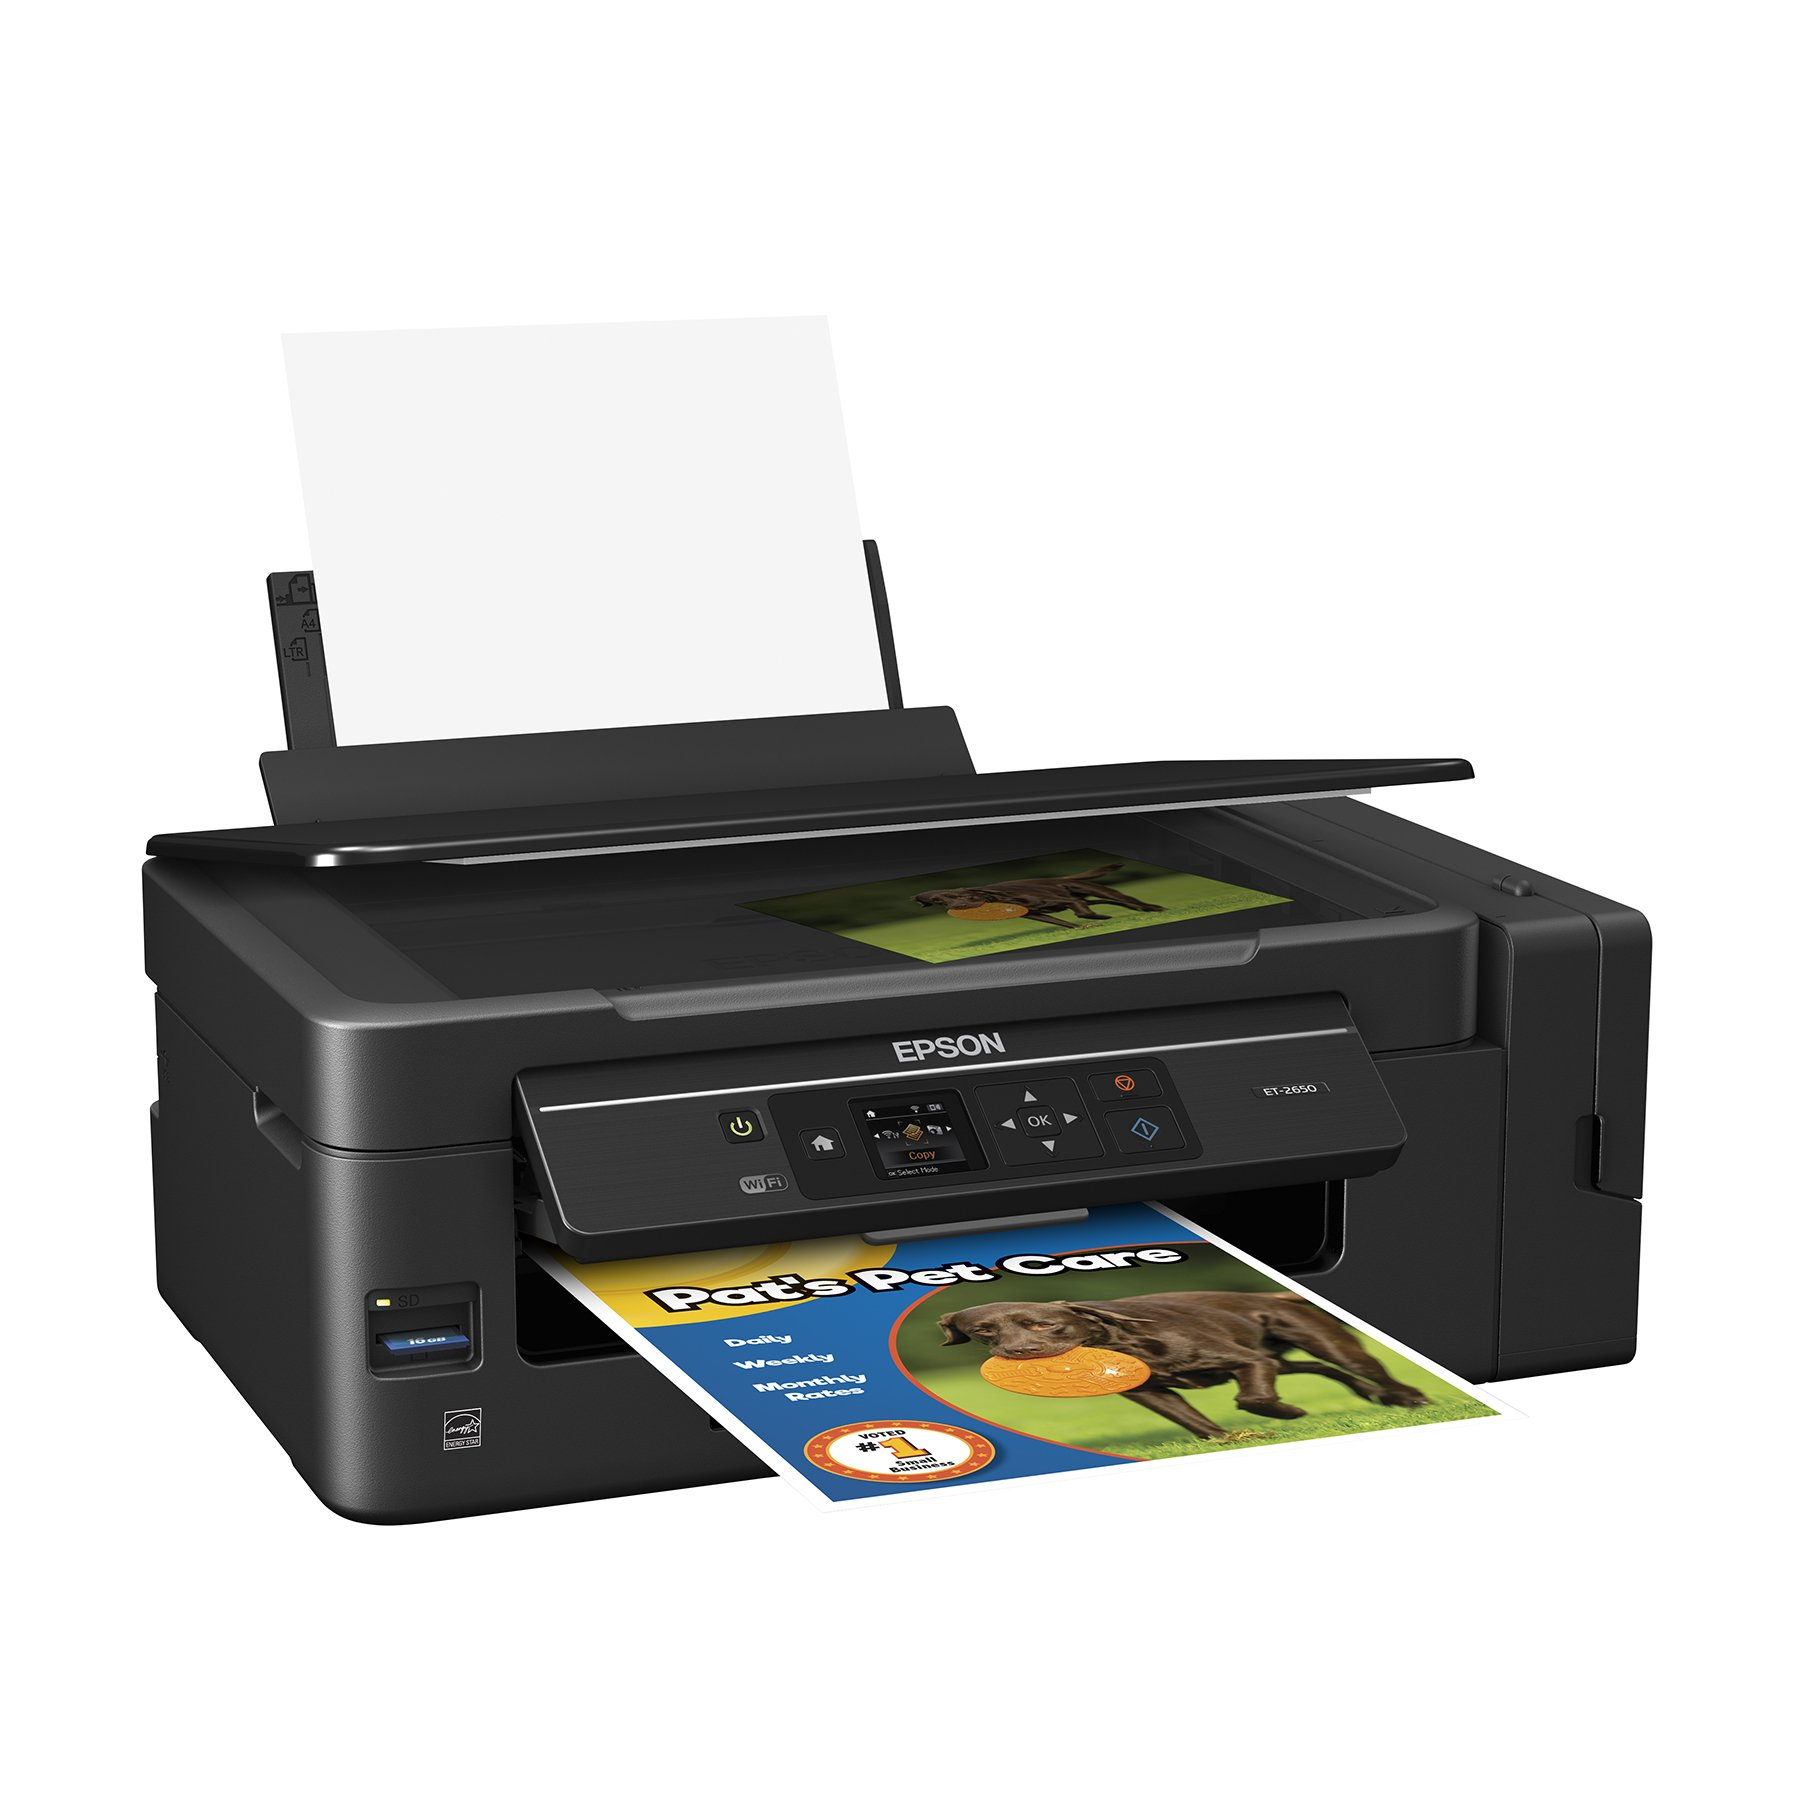 Epson Expression ET-2650 EcoTank Wireless Color All-in-One Small Business Supertank Printer with Scanner and Copier by Epson